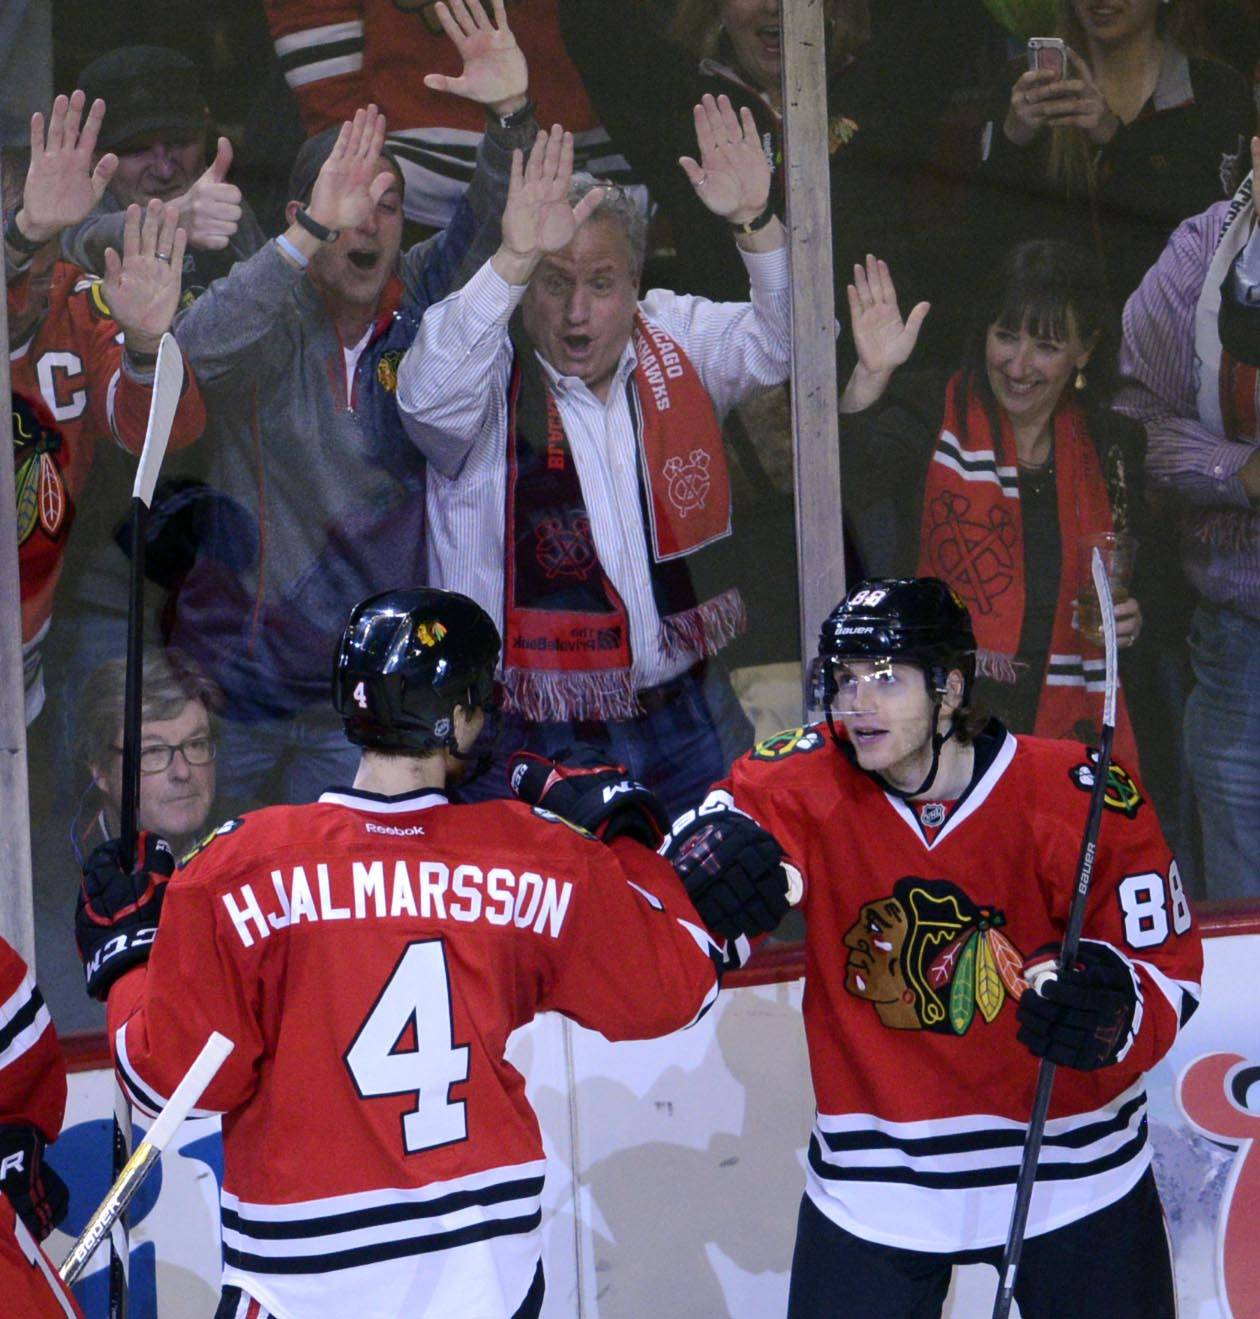 The crowd celebrates a second-period goal by Chicago Blackhawks right wing Patrick Kane.